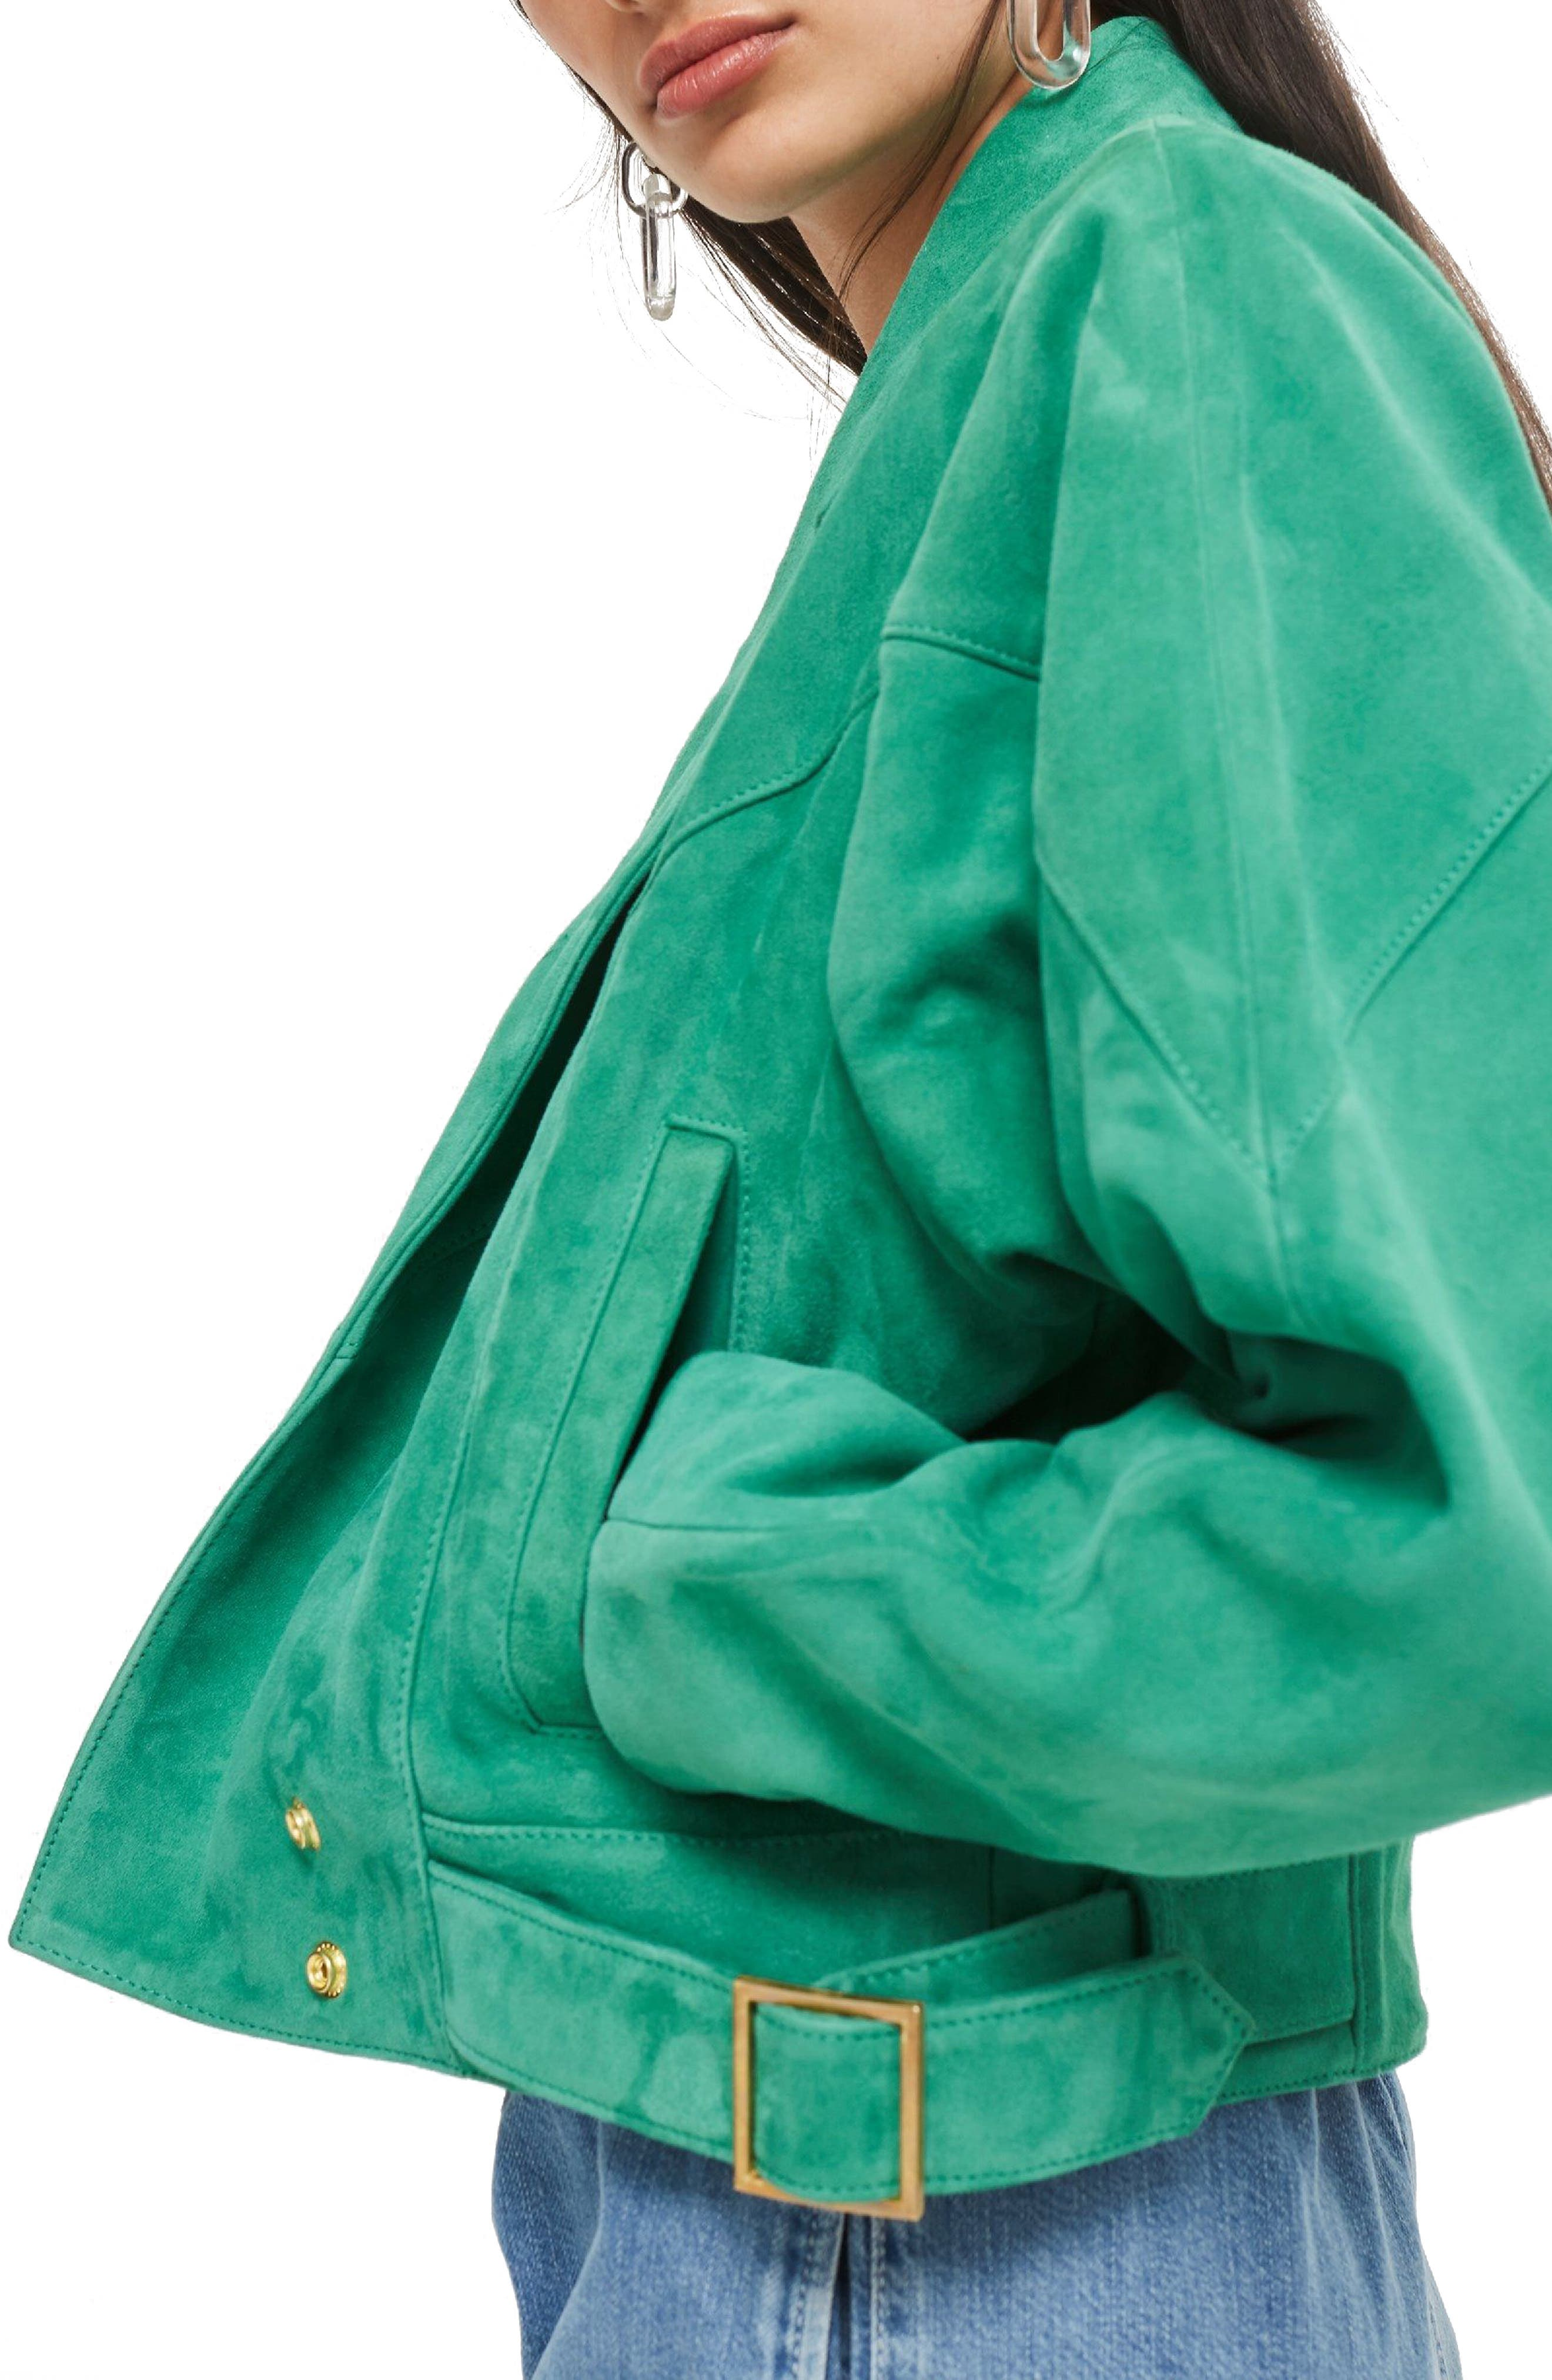 Hawkes Suede Jacket,                             Alternate thumbnail 2, color,